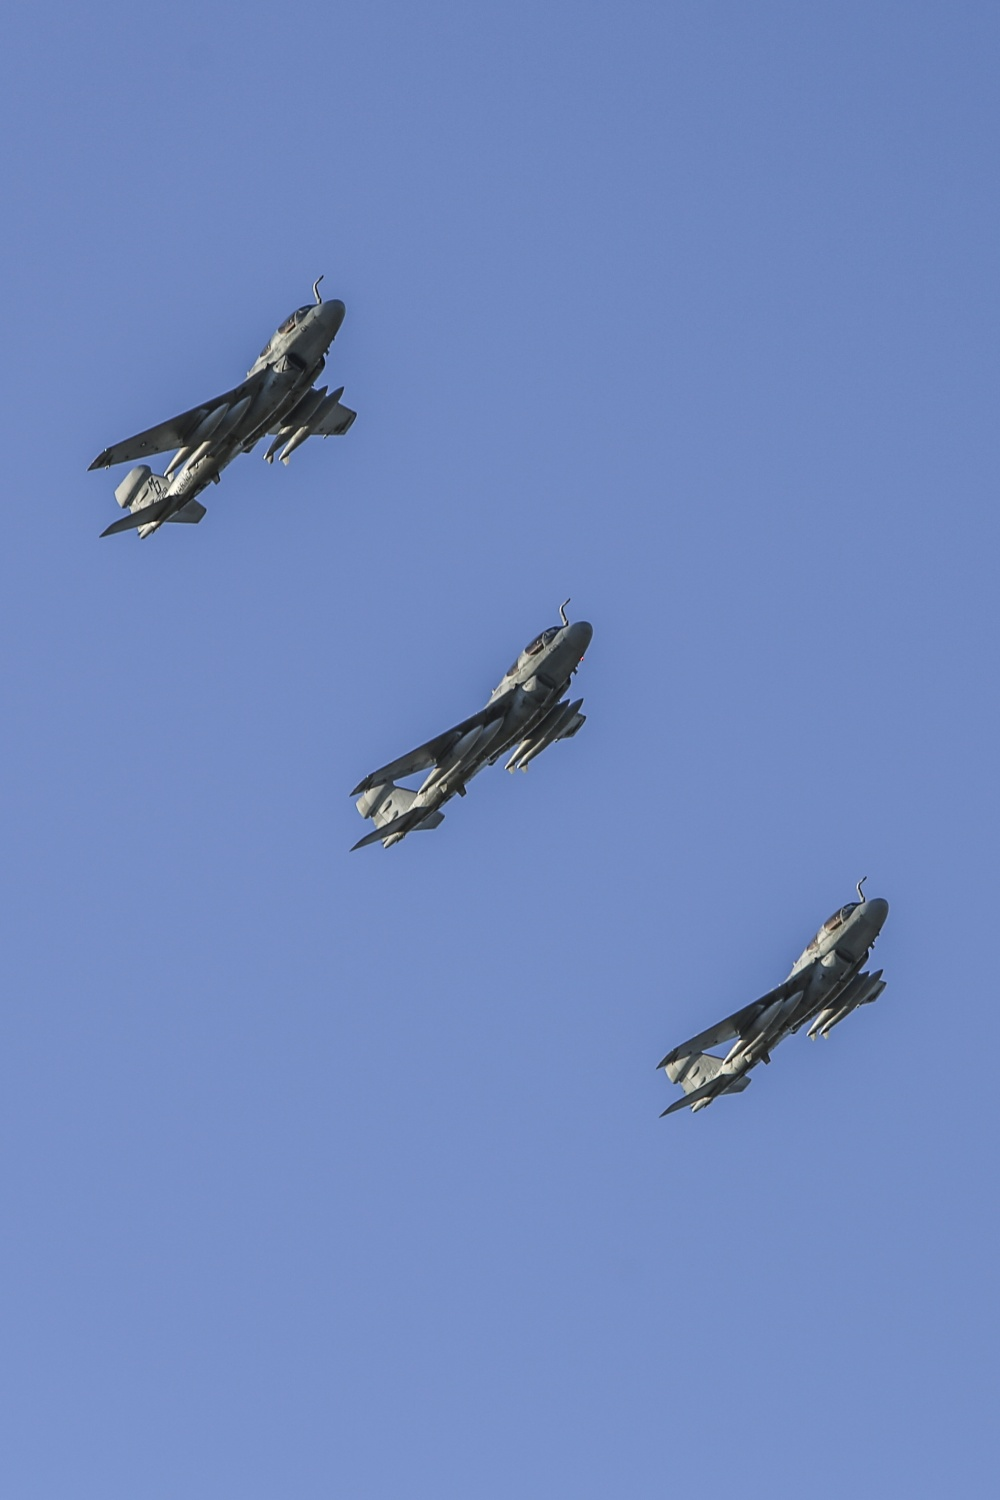 Three Prowlers in Flight